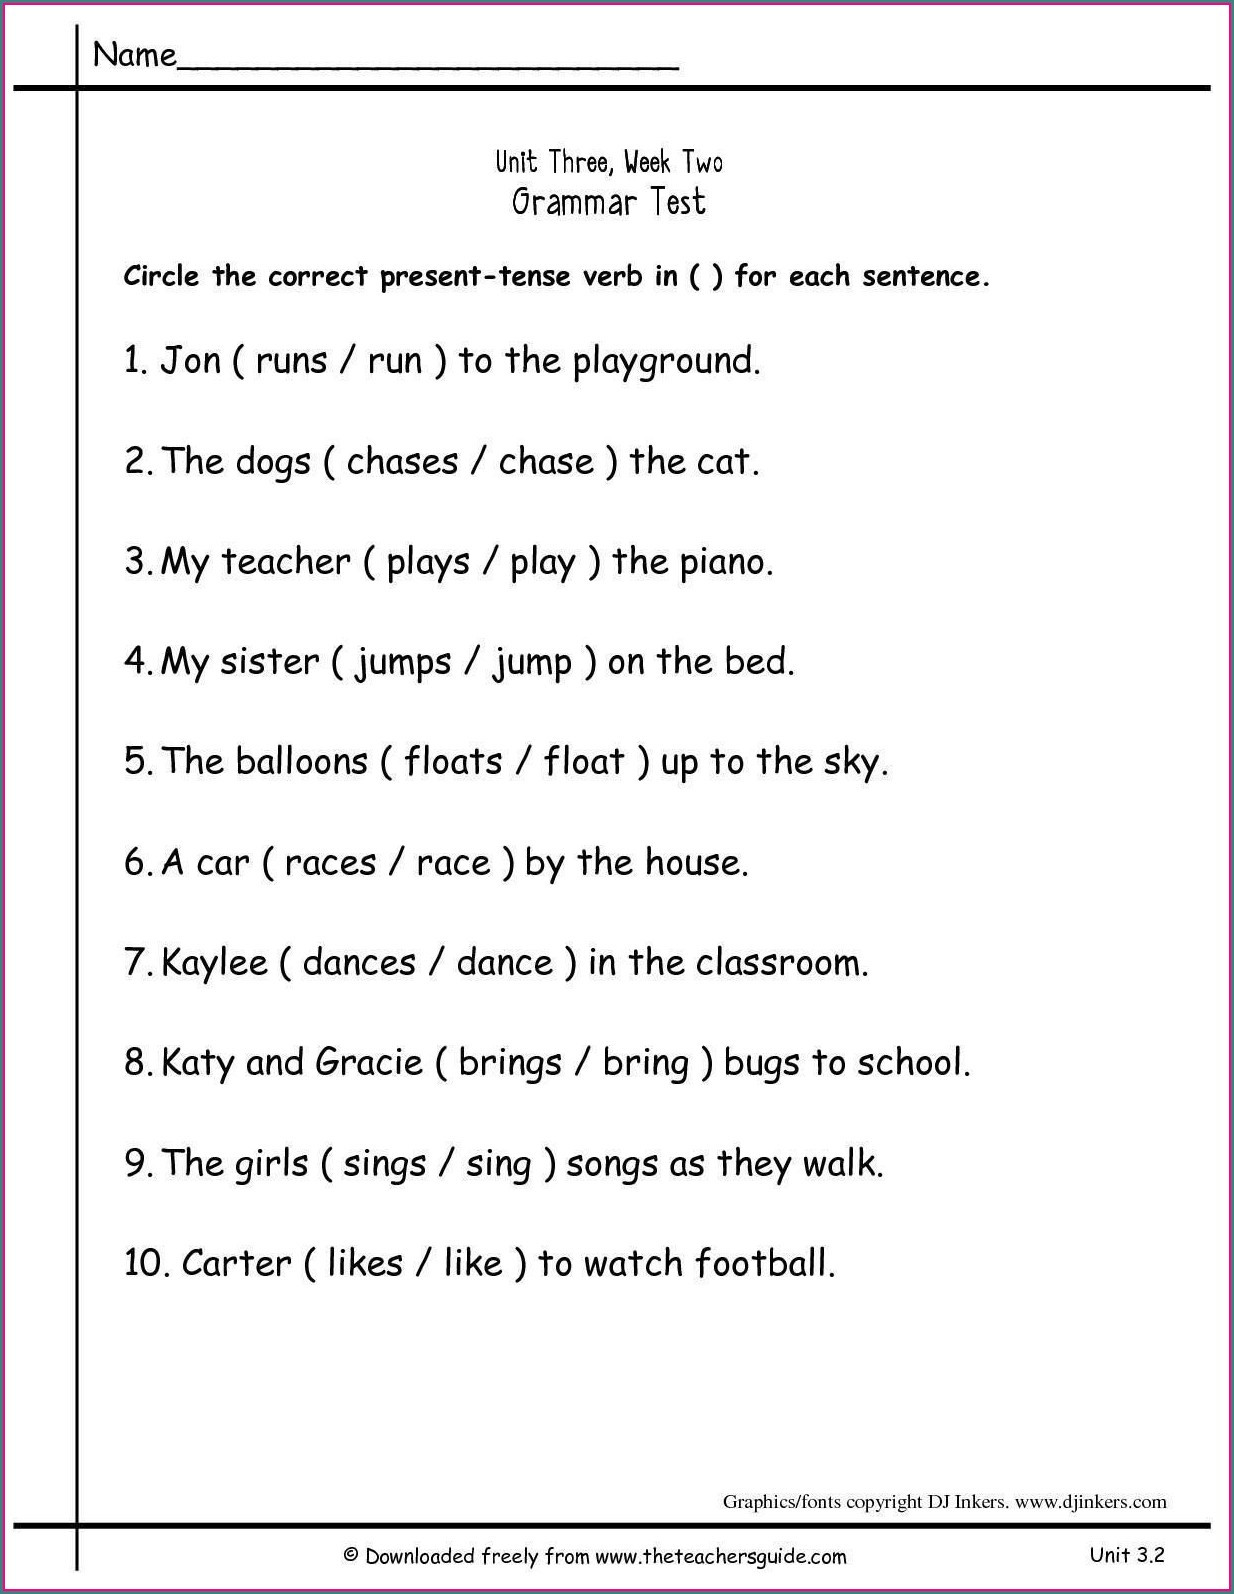 Grammar Worksheets 2nd Grade Printable Math Worksheet 2nd Grade Grammarets Second Printable Free